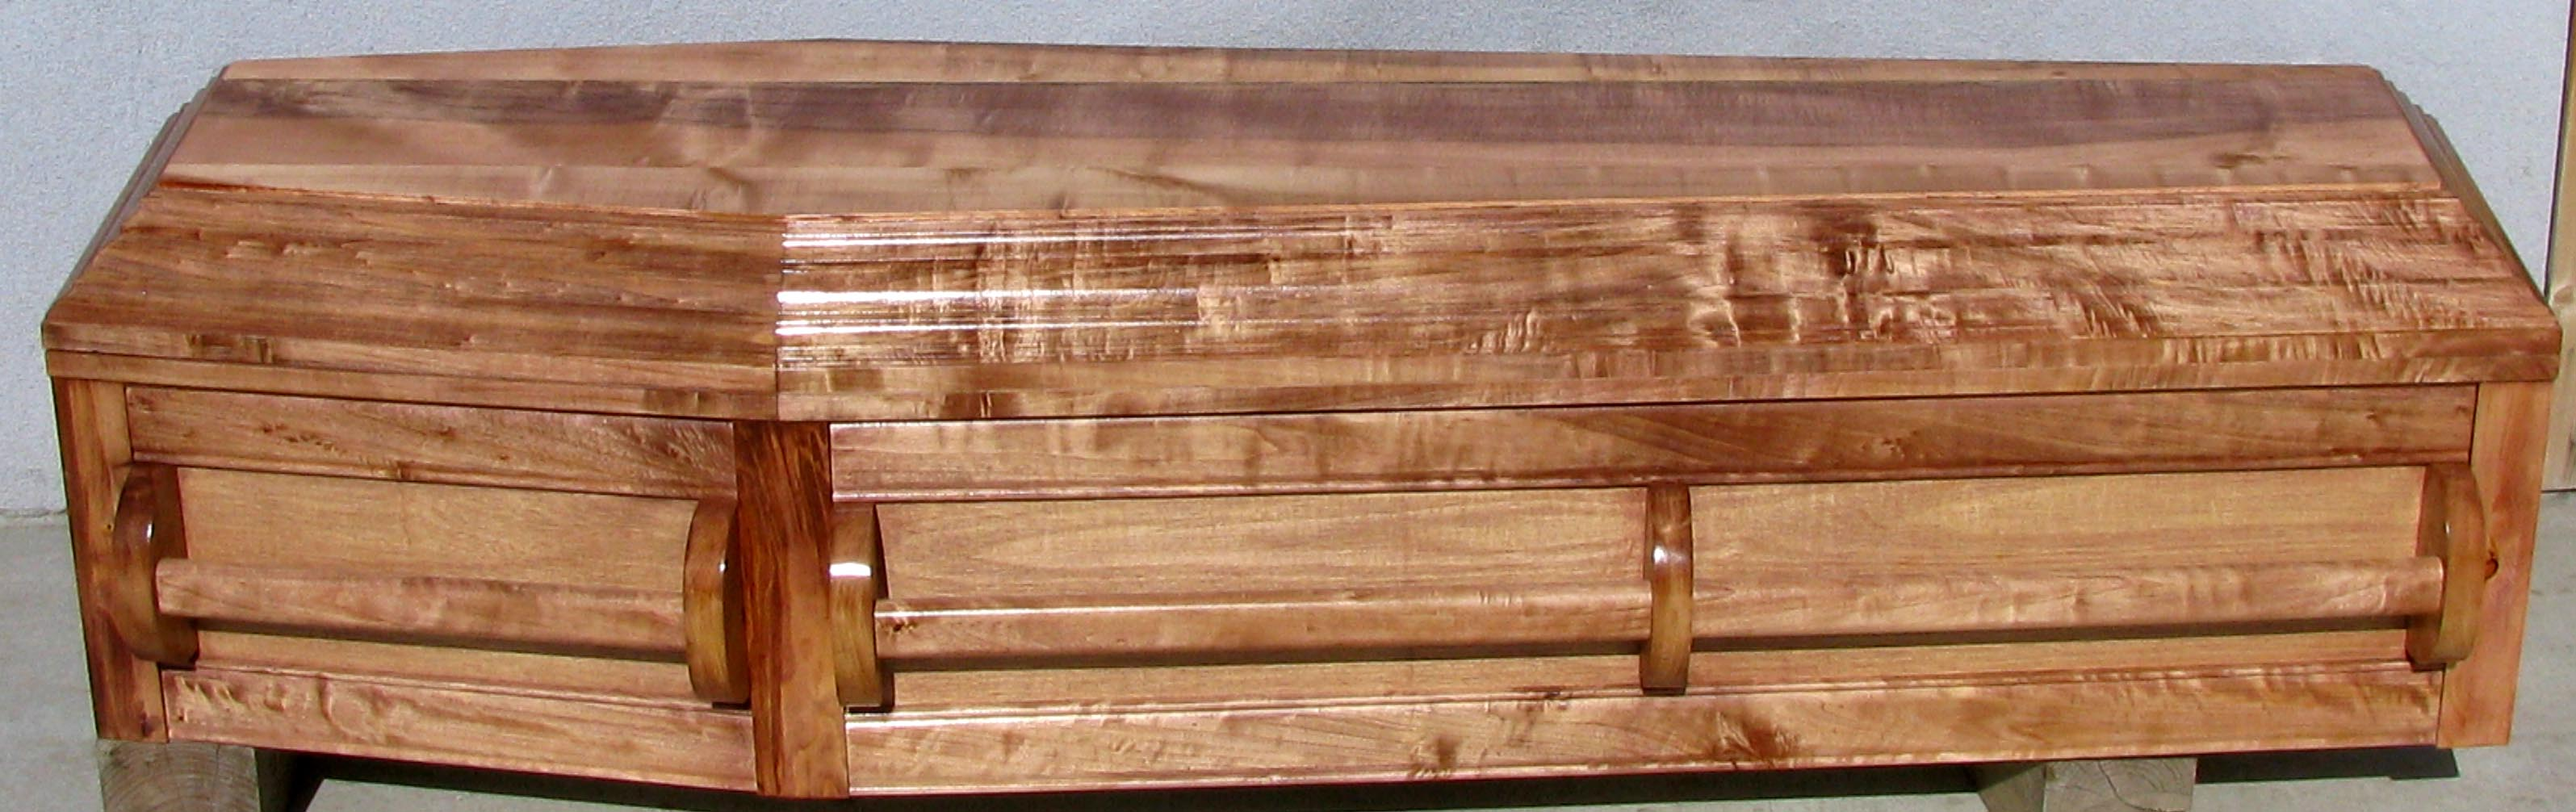 Old Wood Coffin http://www.herpworldexpo.com/420/old-wood-coffin